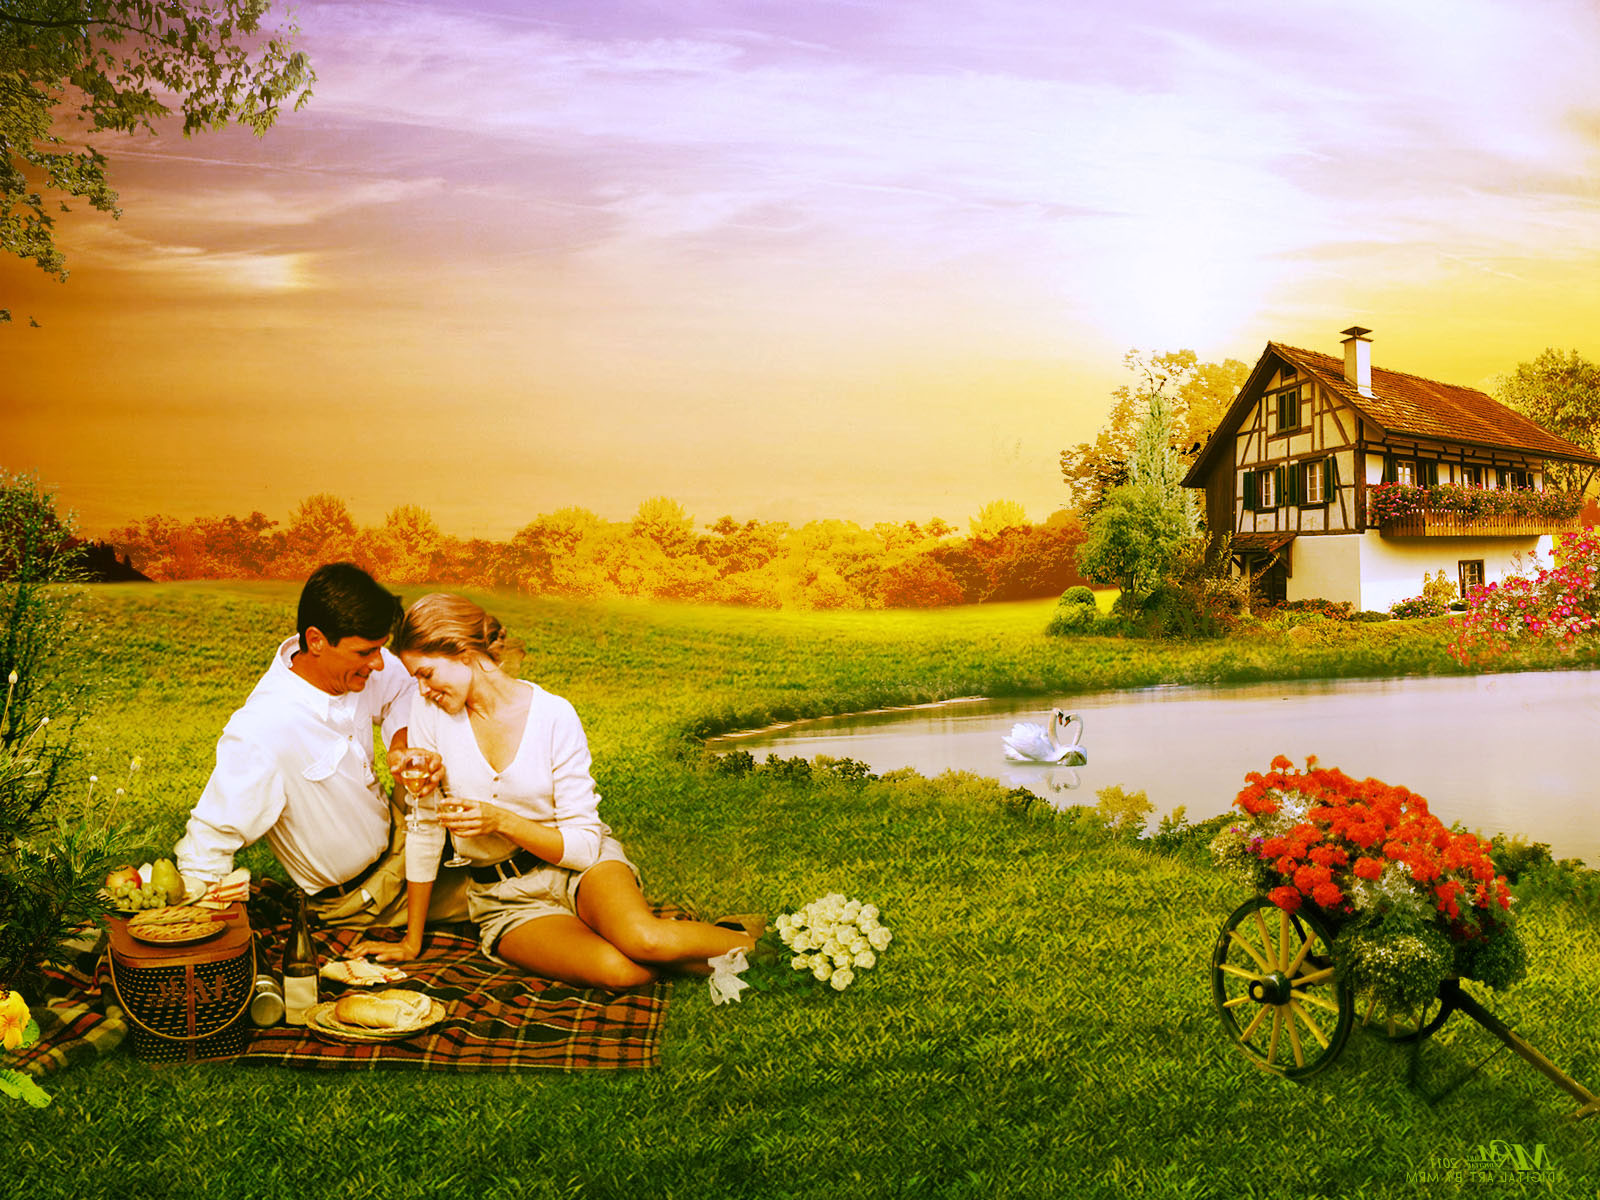 Beautiful Wallpaper Of Love couple : Valentine s Day Wallpaper - Graphista: couple in Love